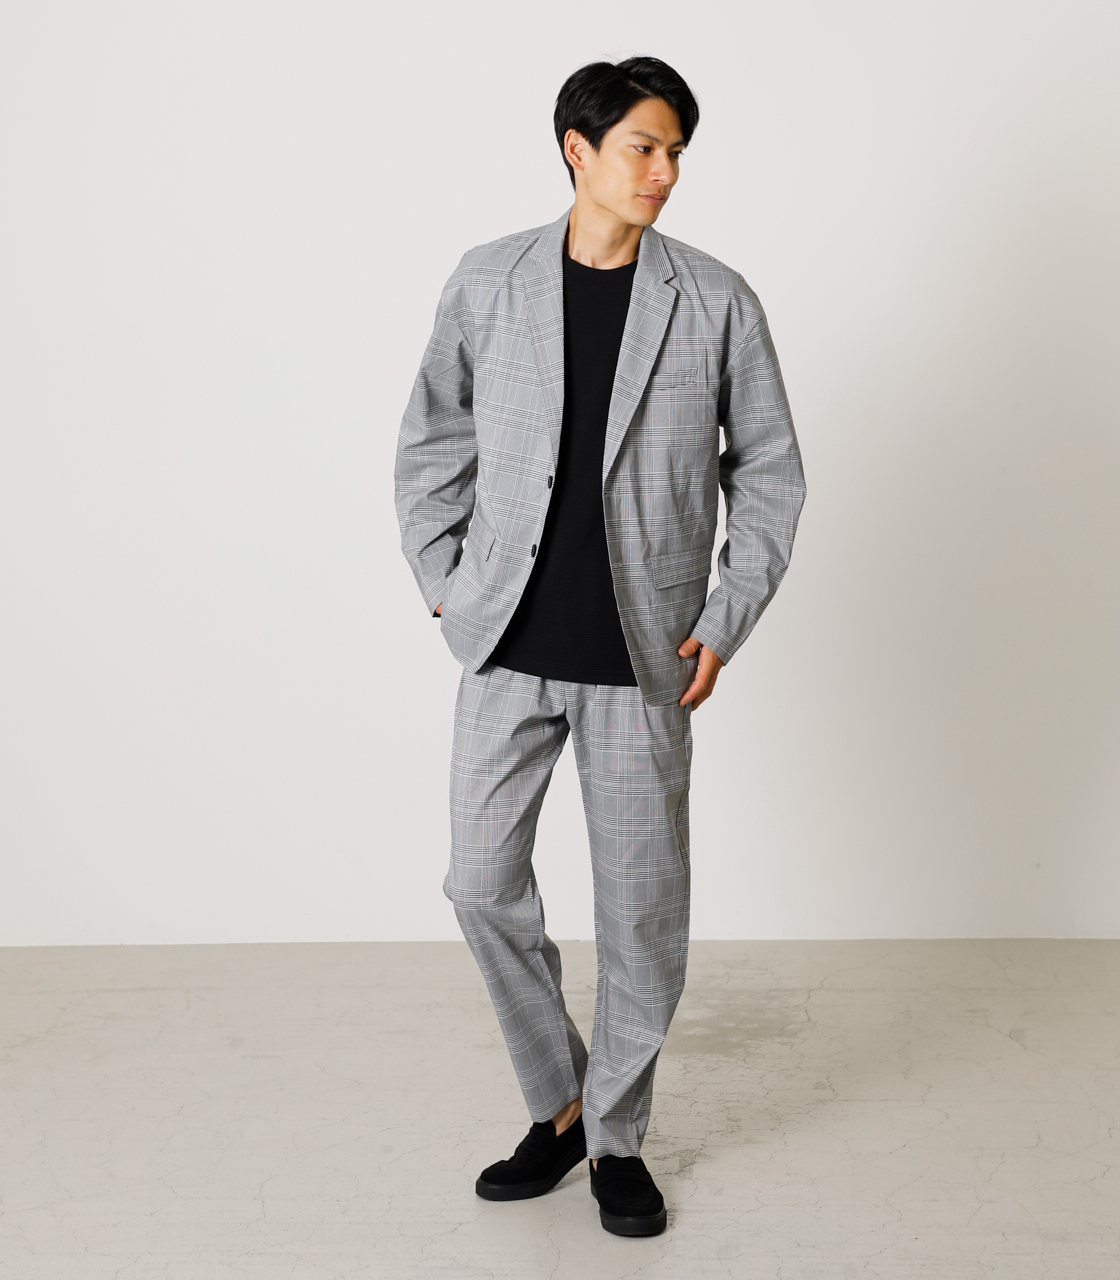 TR RELAX PANTS/TRリラックスパンツ 詳細画像 柄GRY 2